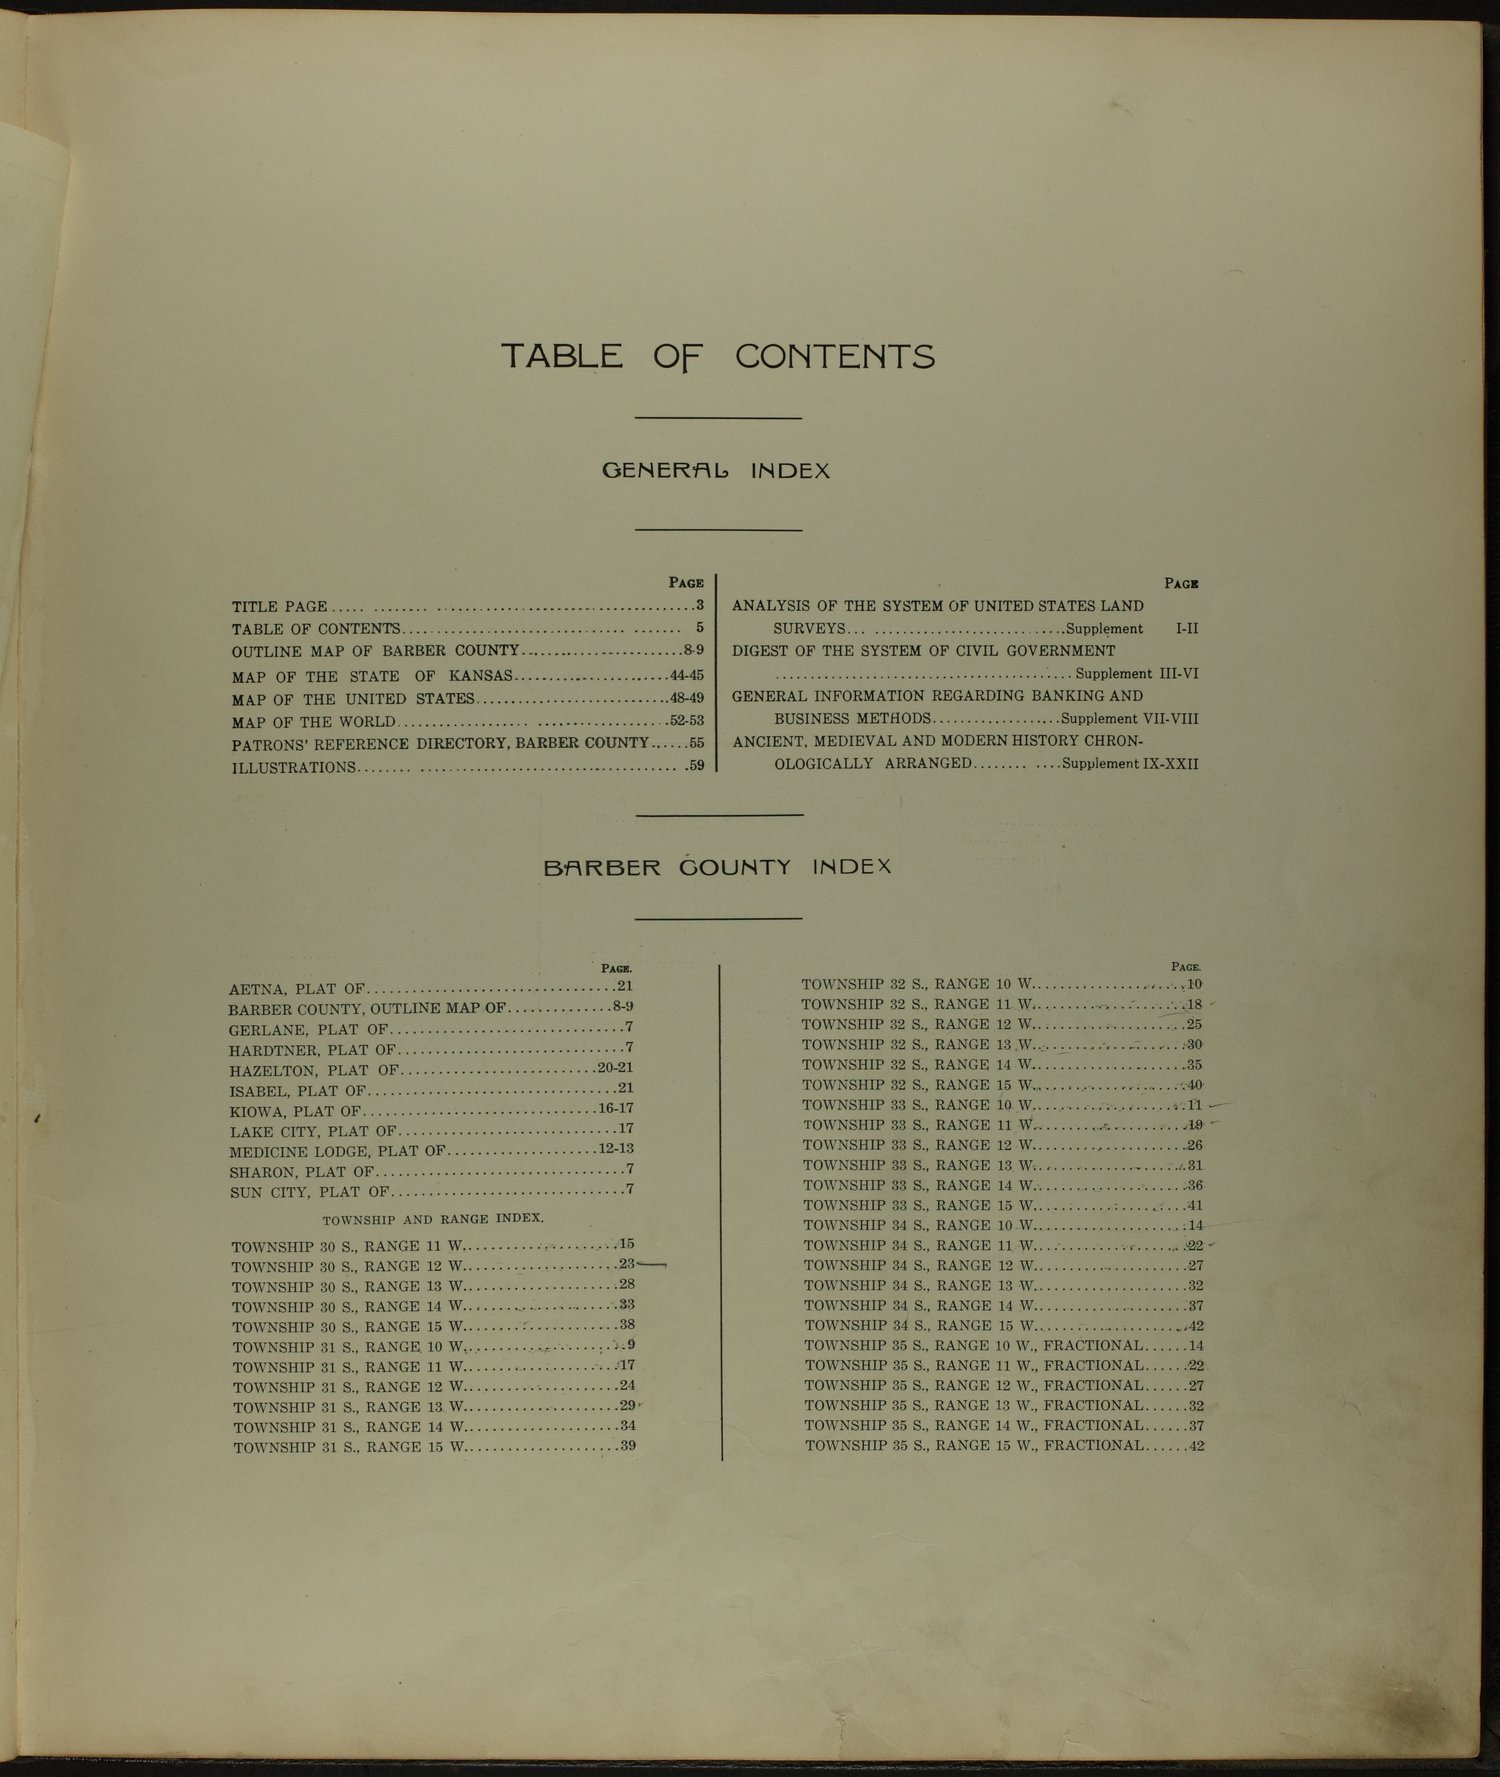 Standard atlas of Barber County, Kansas - Table of Contents